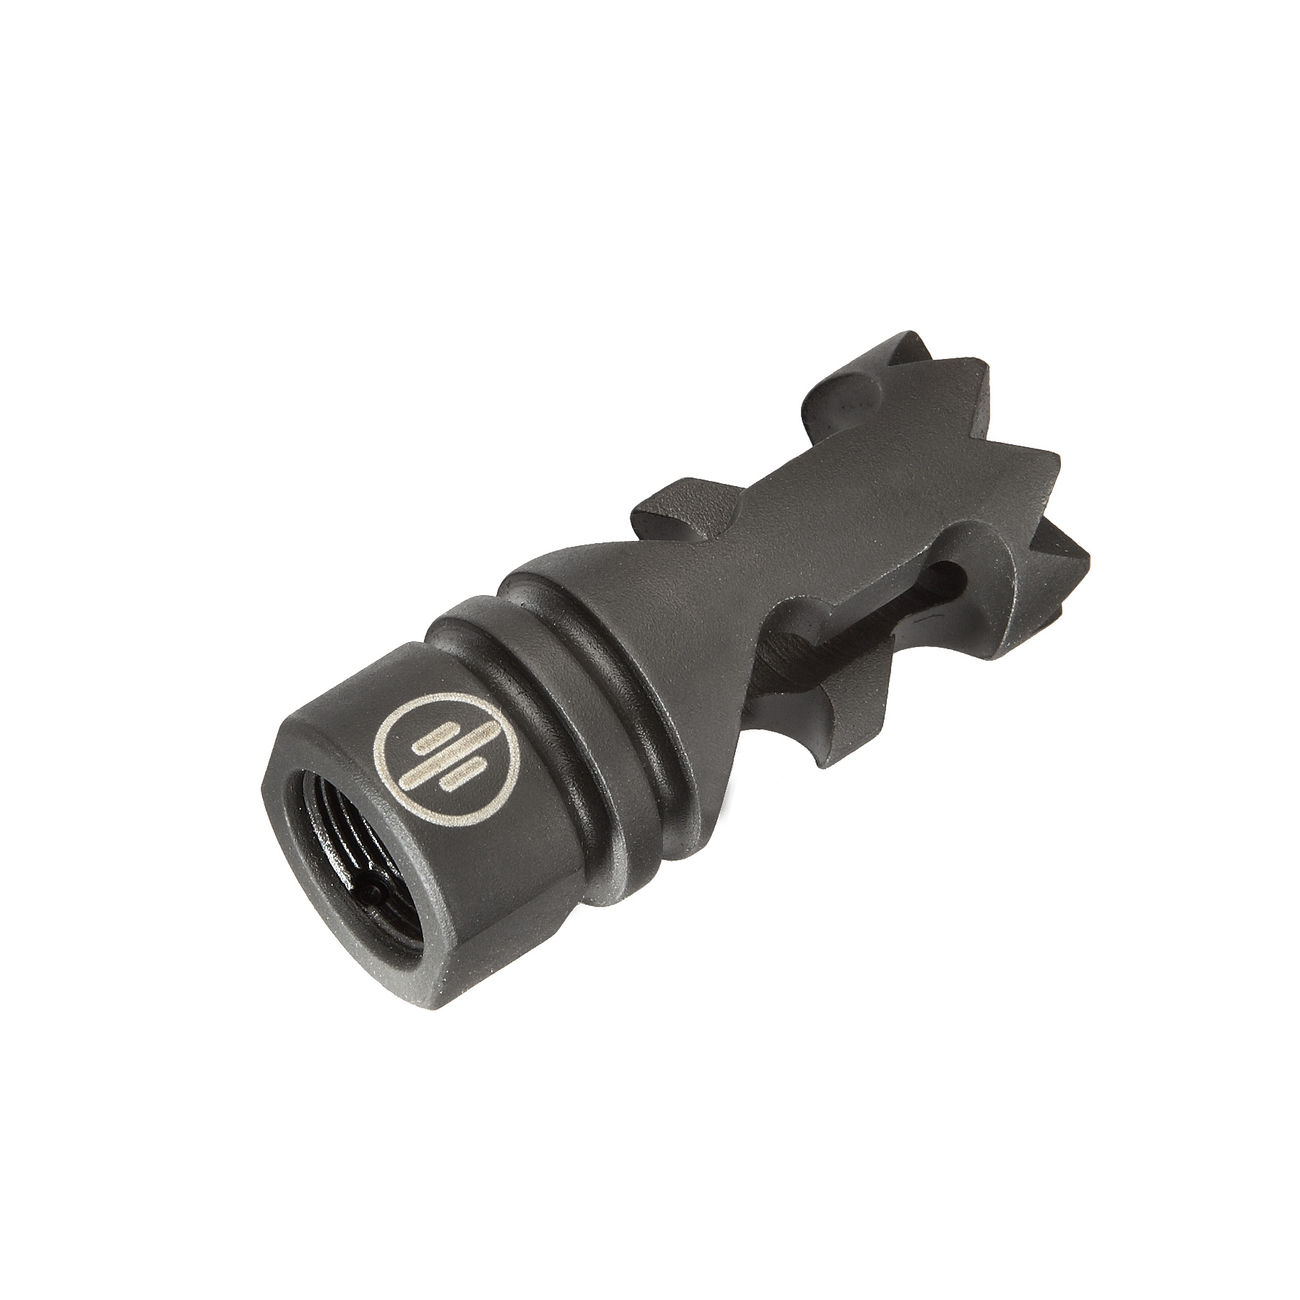 MadBull / Primary Weapons Aggressive Comp Flash-Hider schwarz 1